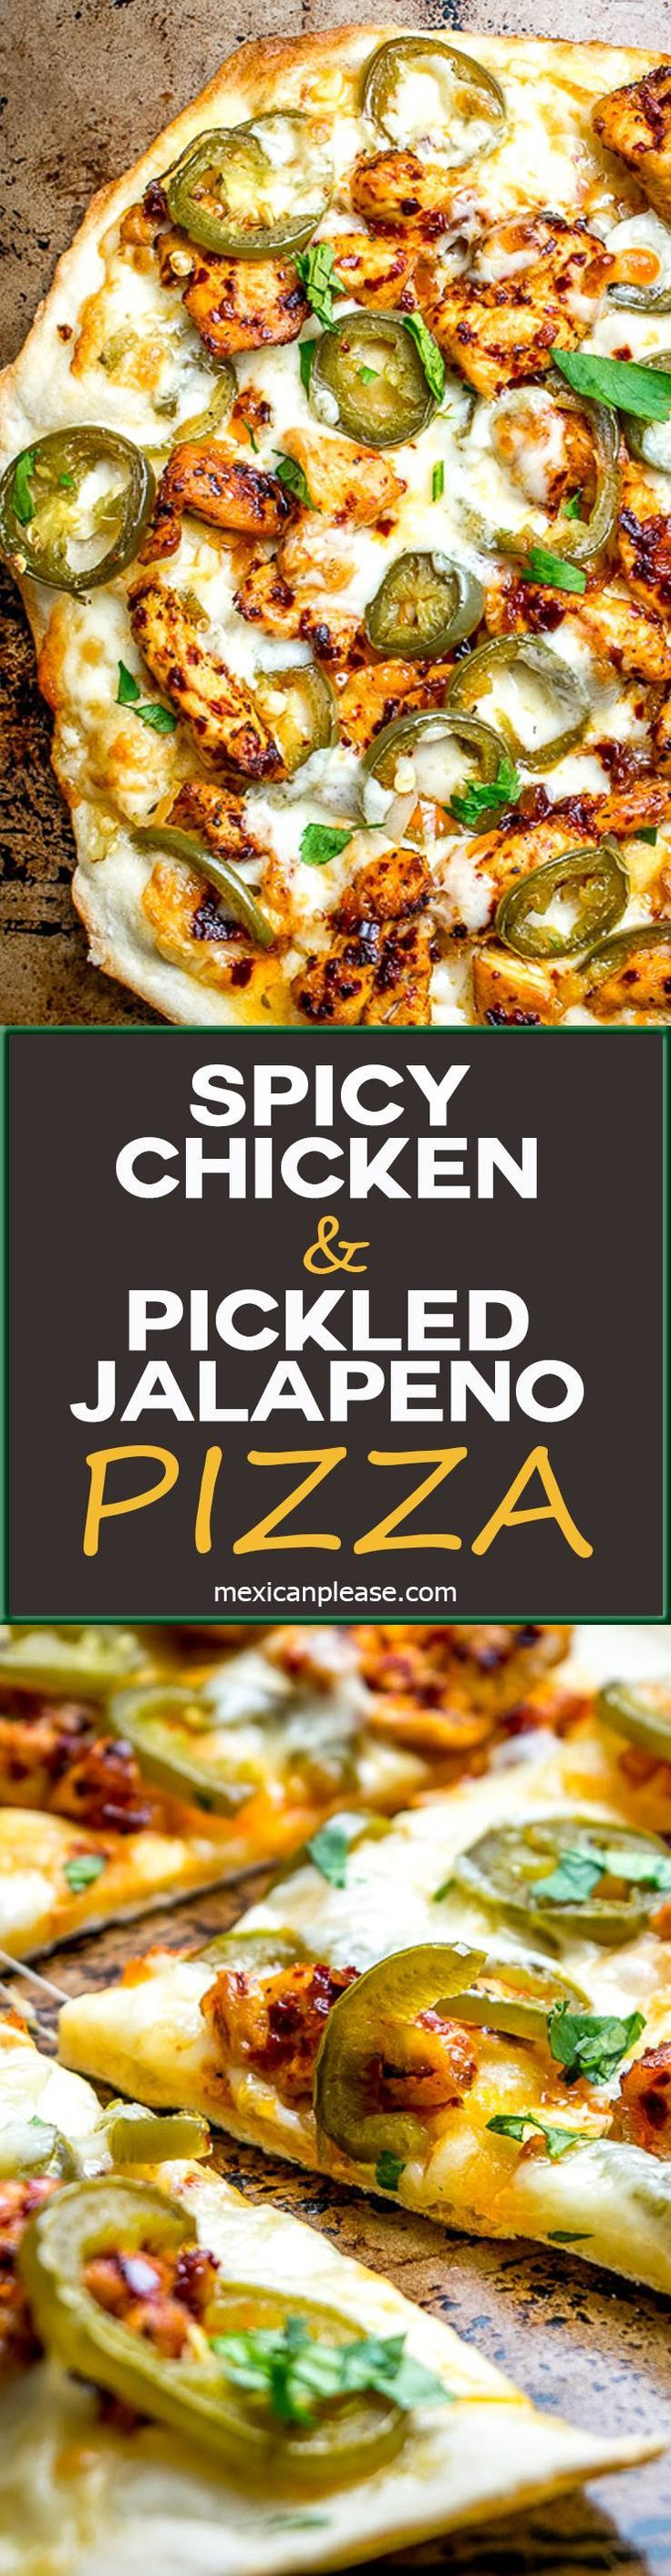 This Spicy Chicken and Pickled Jalapeno Pizza is the perfect example of Mexican cooking ingredients influencing just about everything in my kitchen. A super easy and delicious pizza recipe with no special pizza gear needed!